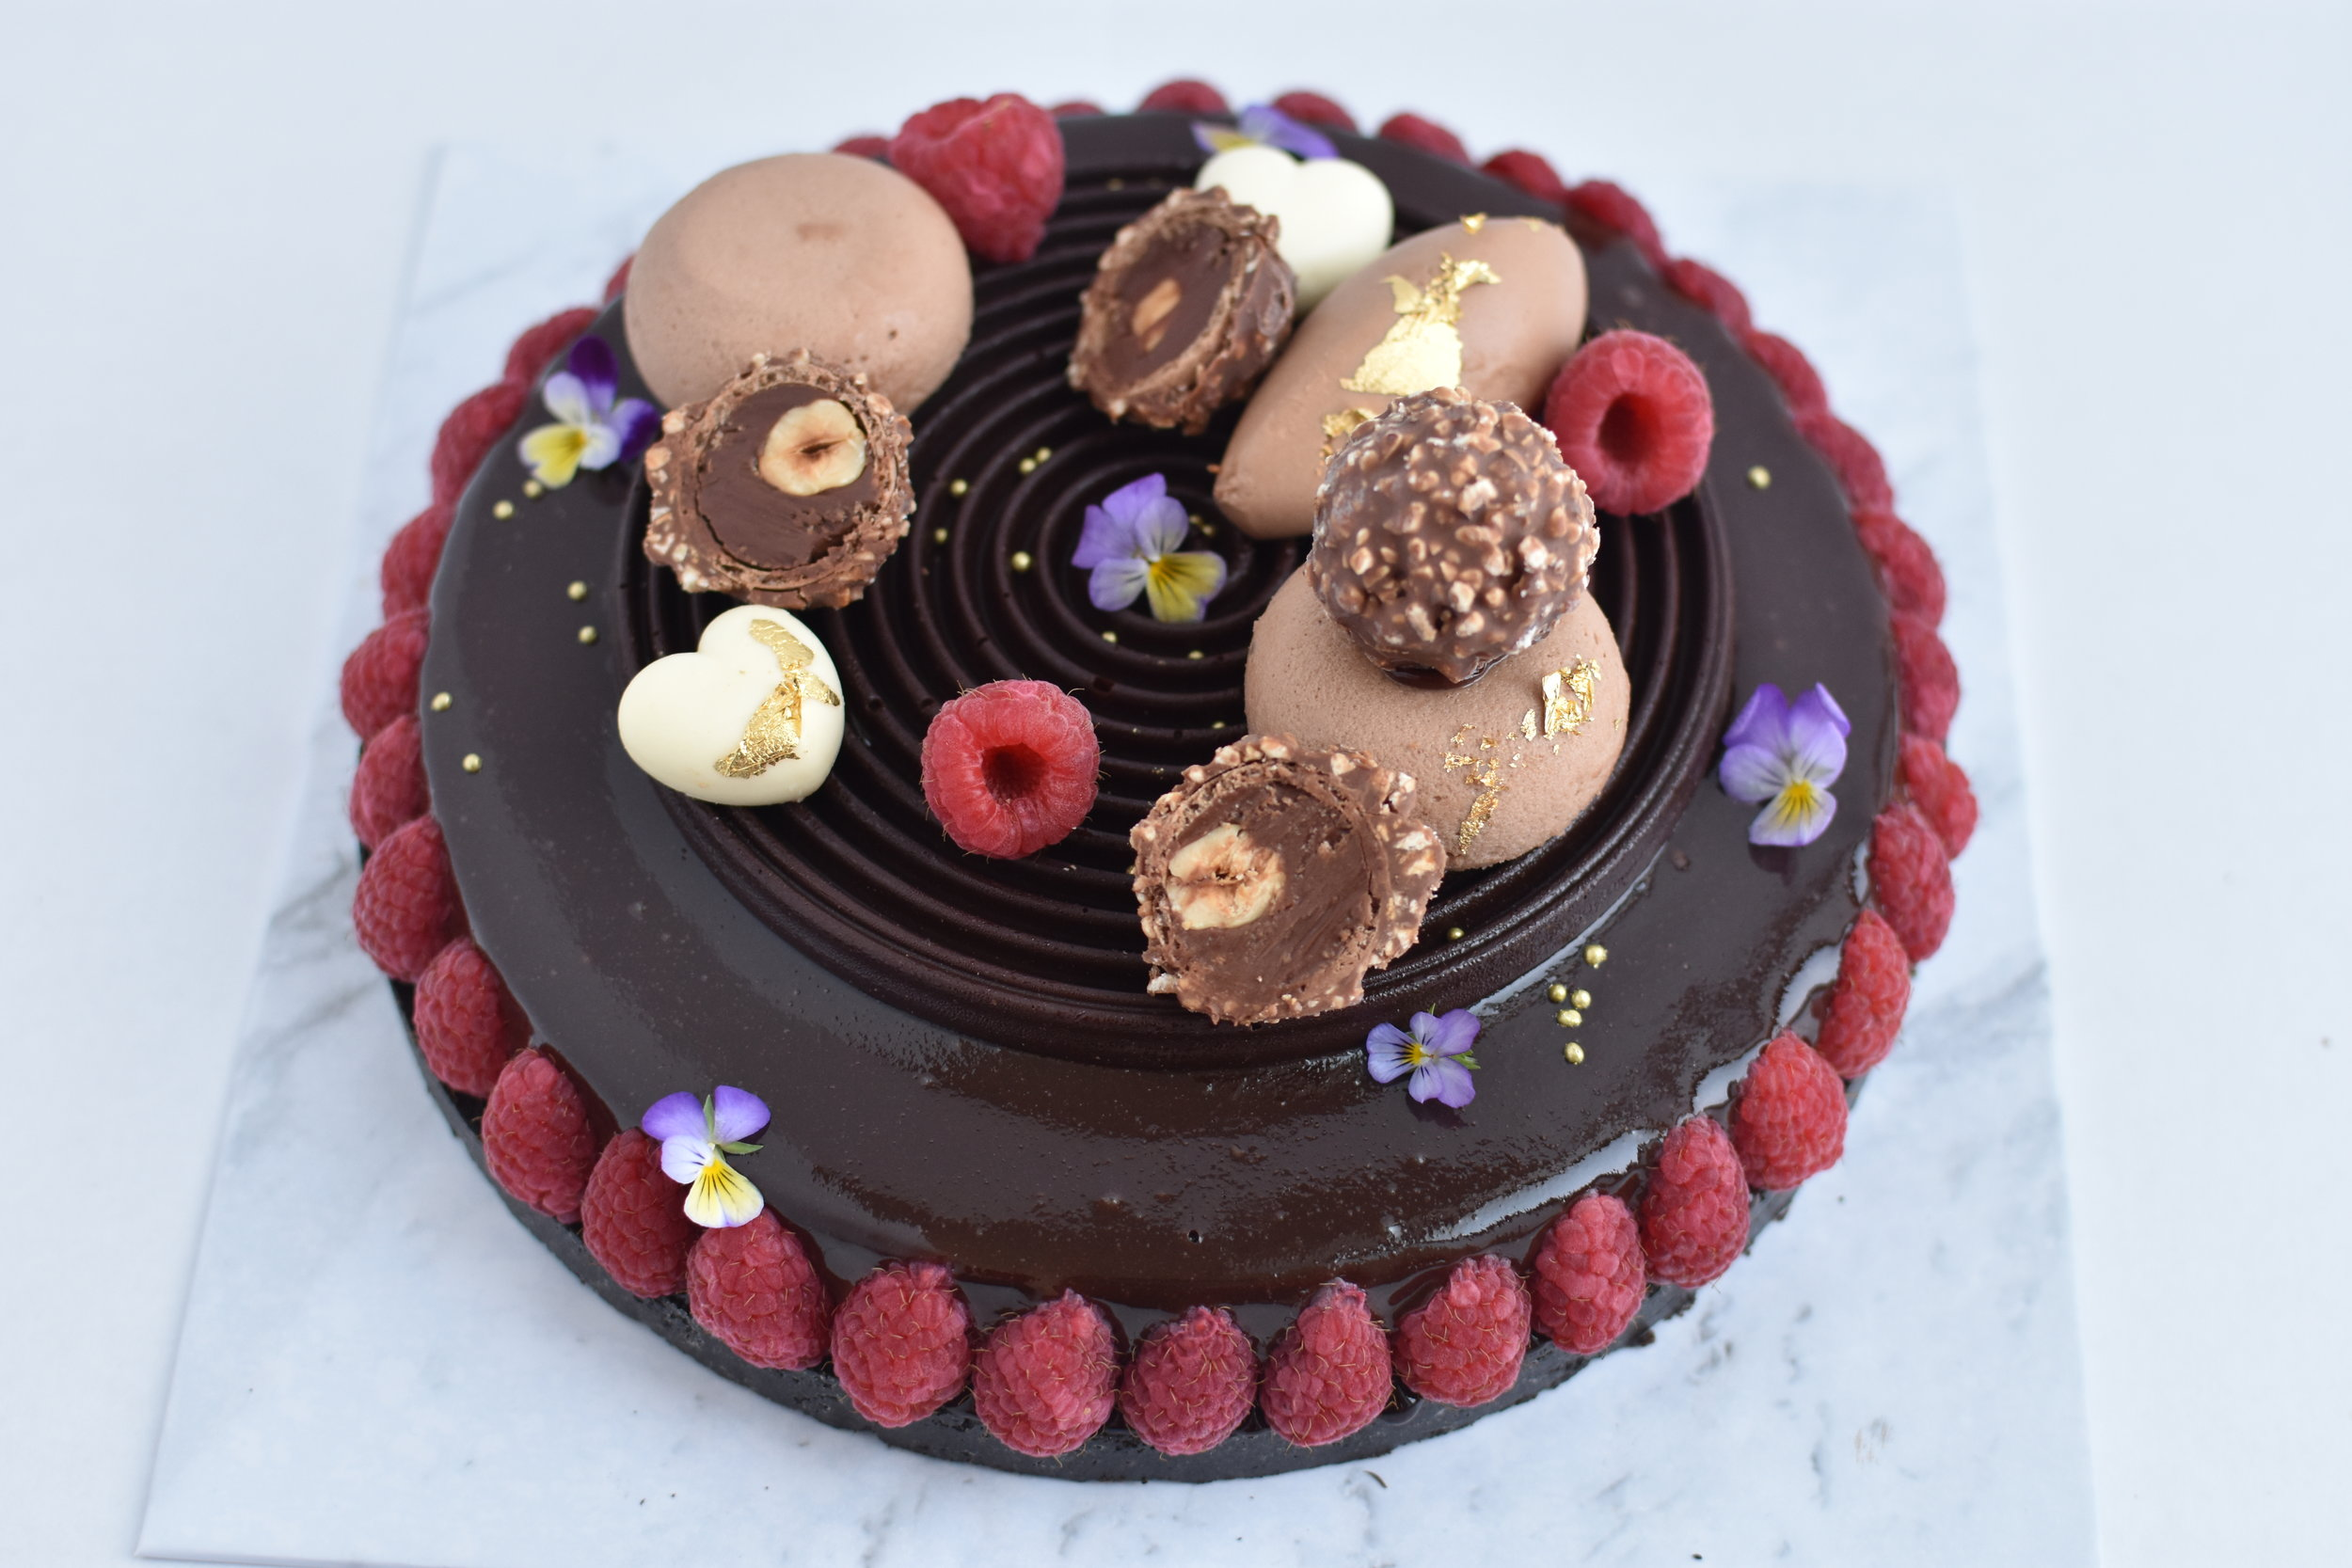 "NUTELLA ENTREMET  Hazelnut Brownie Base, Nutella Cheesecake, Dark Chocolate Mirror Glaze, Bitter Chocolate Disc, Milk and White Chocolate Mousse, Ferrero, Raspberries, Edible Flowers, Gold Pearls and Gold Leaf.  6"" size $49.00 Feed upto 8  8"" size $69.00 Feed upto 12"